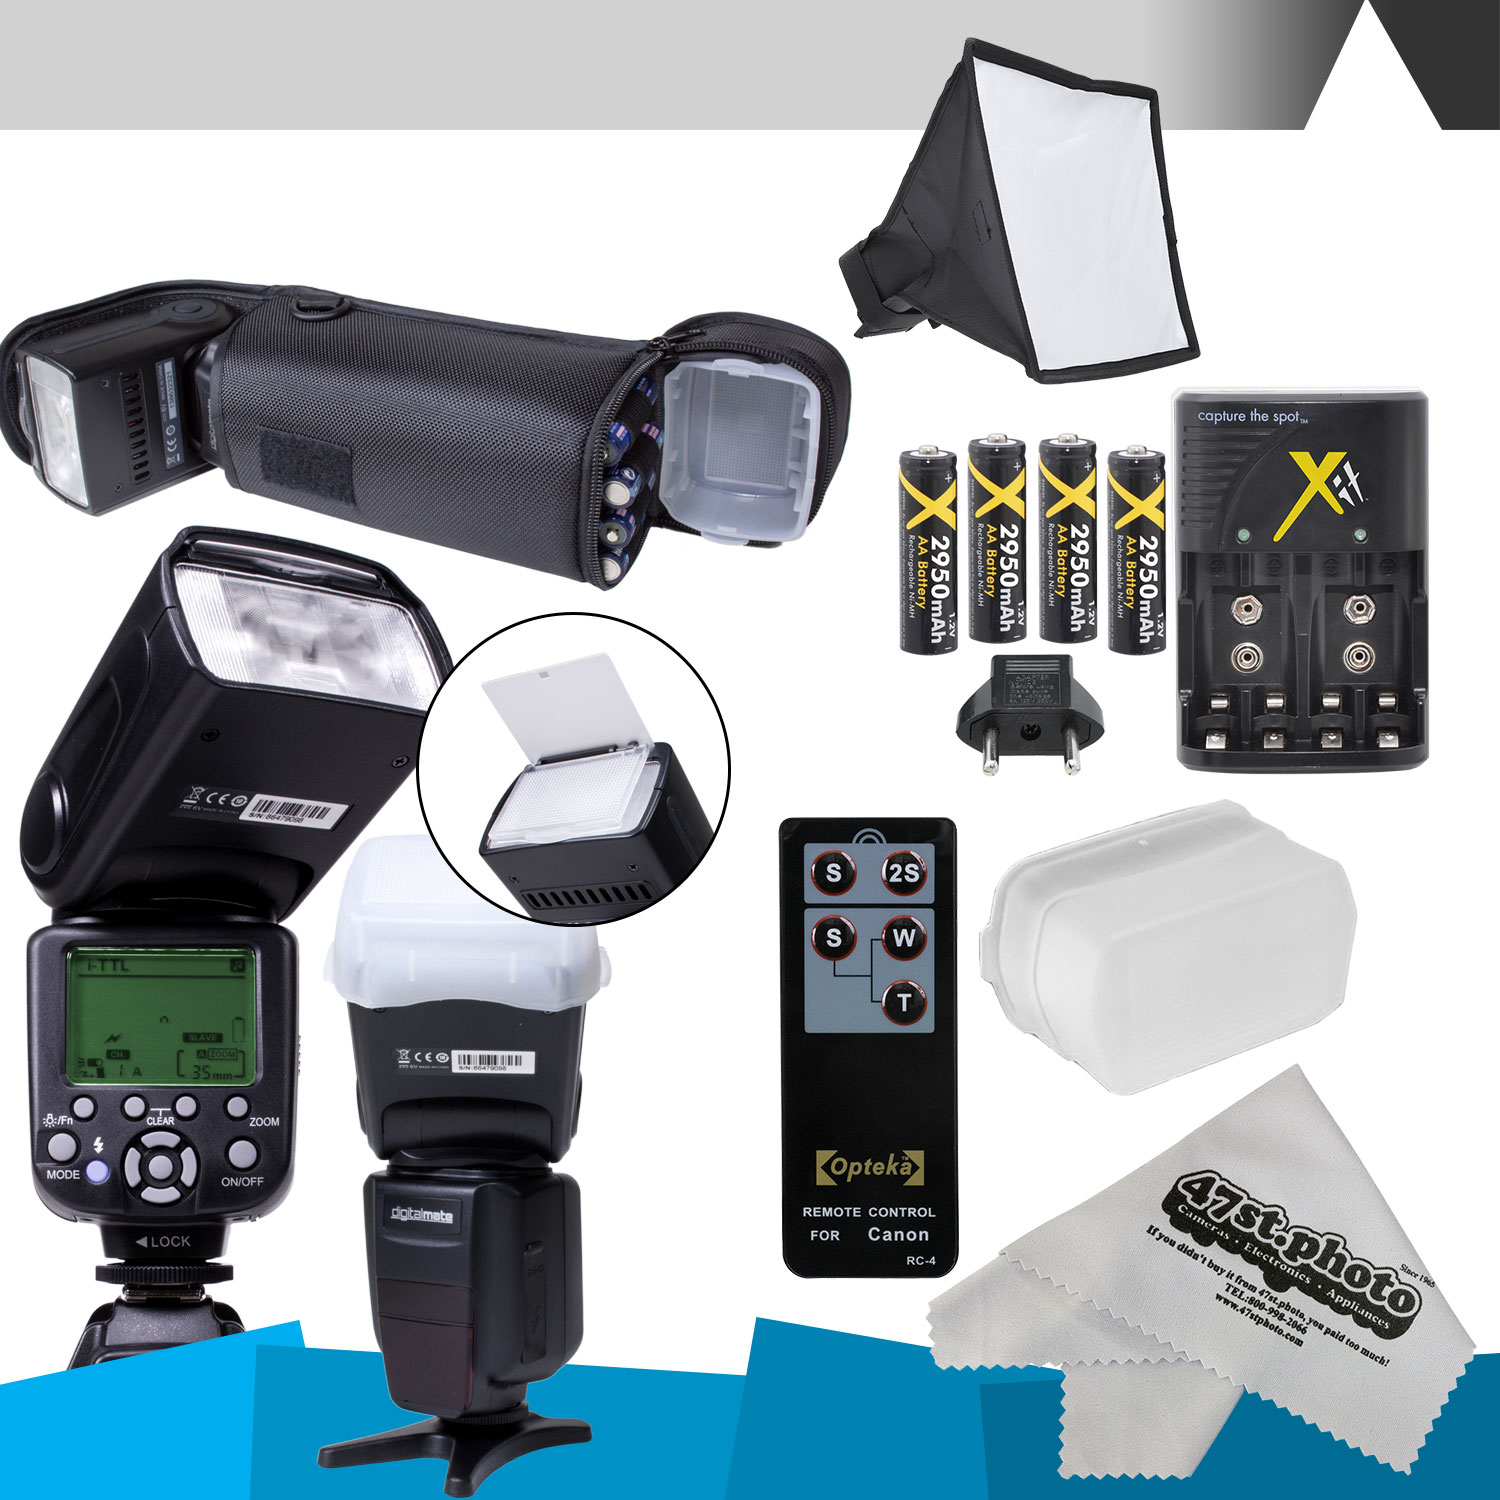 DigitalMate SB680 E-TTL Flash Kit & more for CANON DSLR Rebel T6i, T6s,T5i, T4i, T3i, T2i, T1i, T5, T3, XT, XSi, XS, EOS